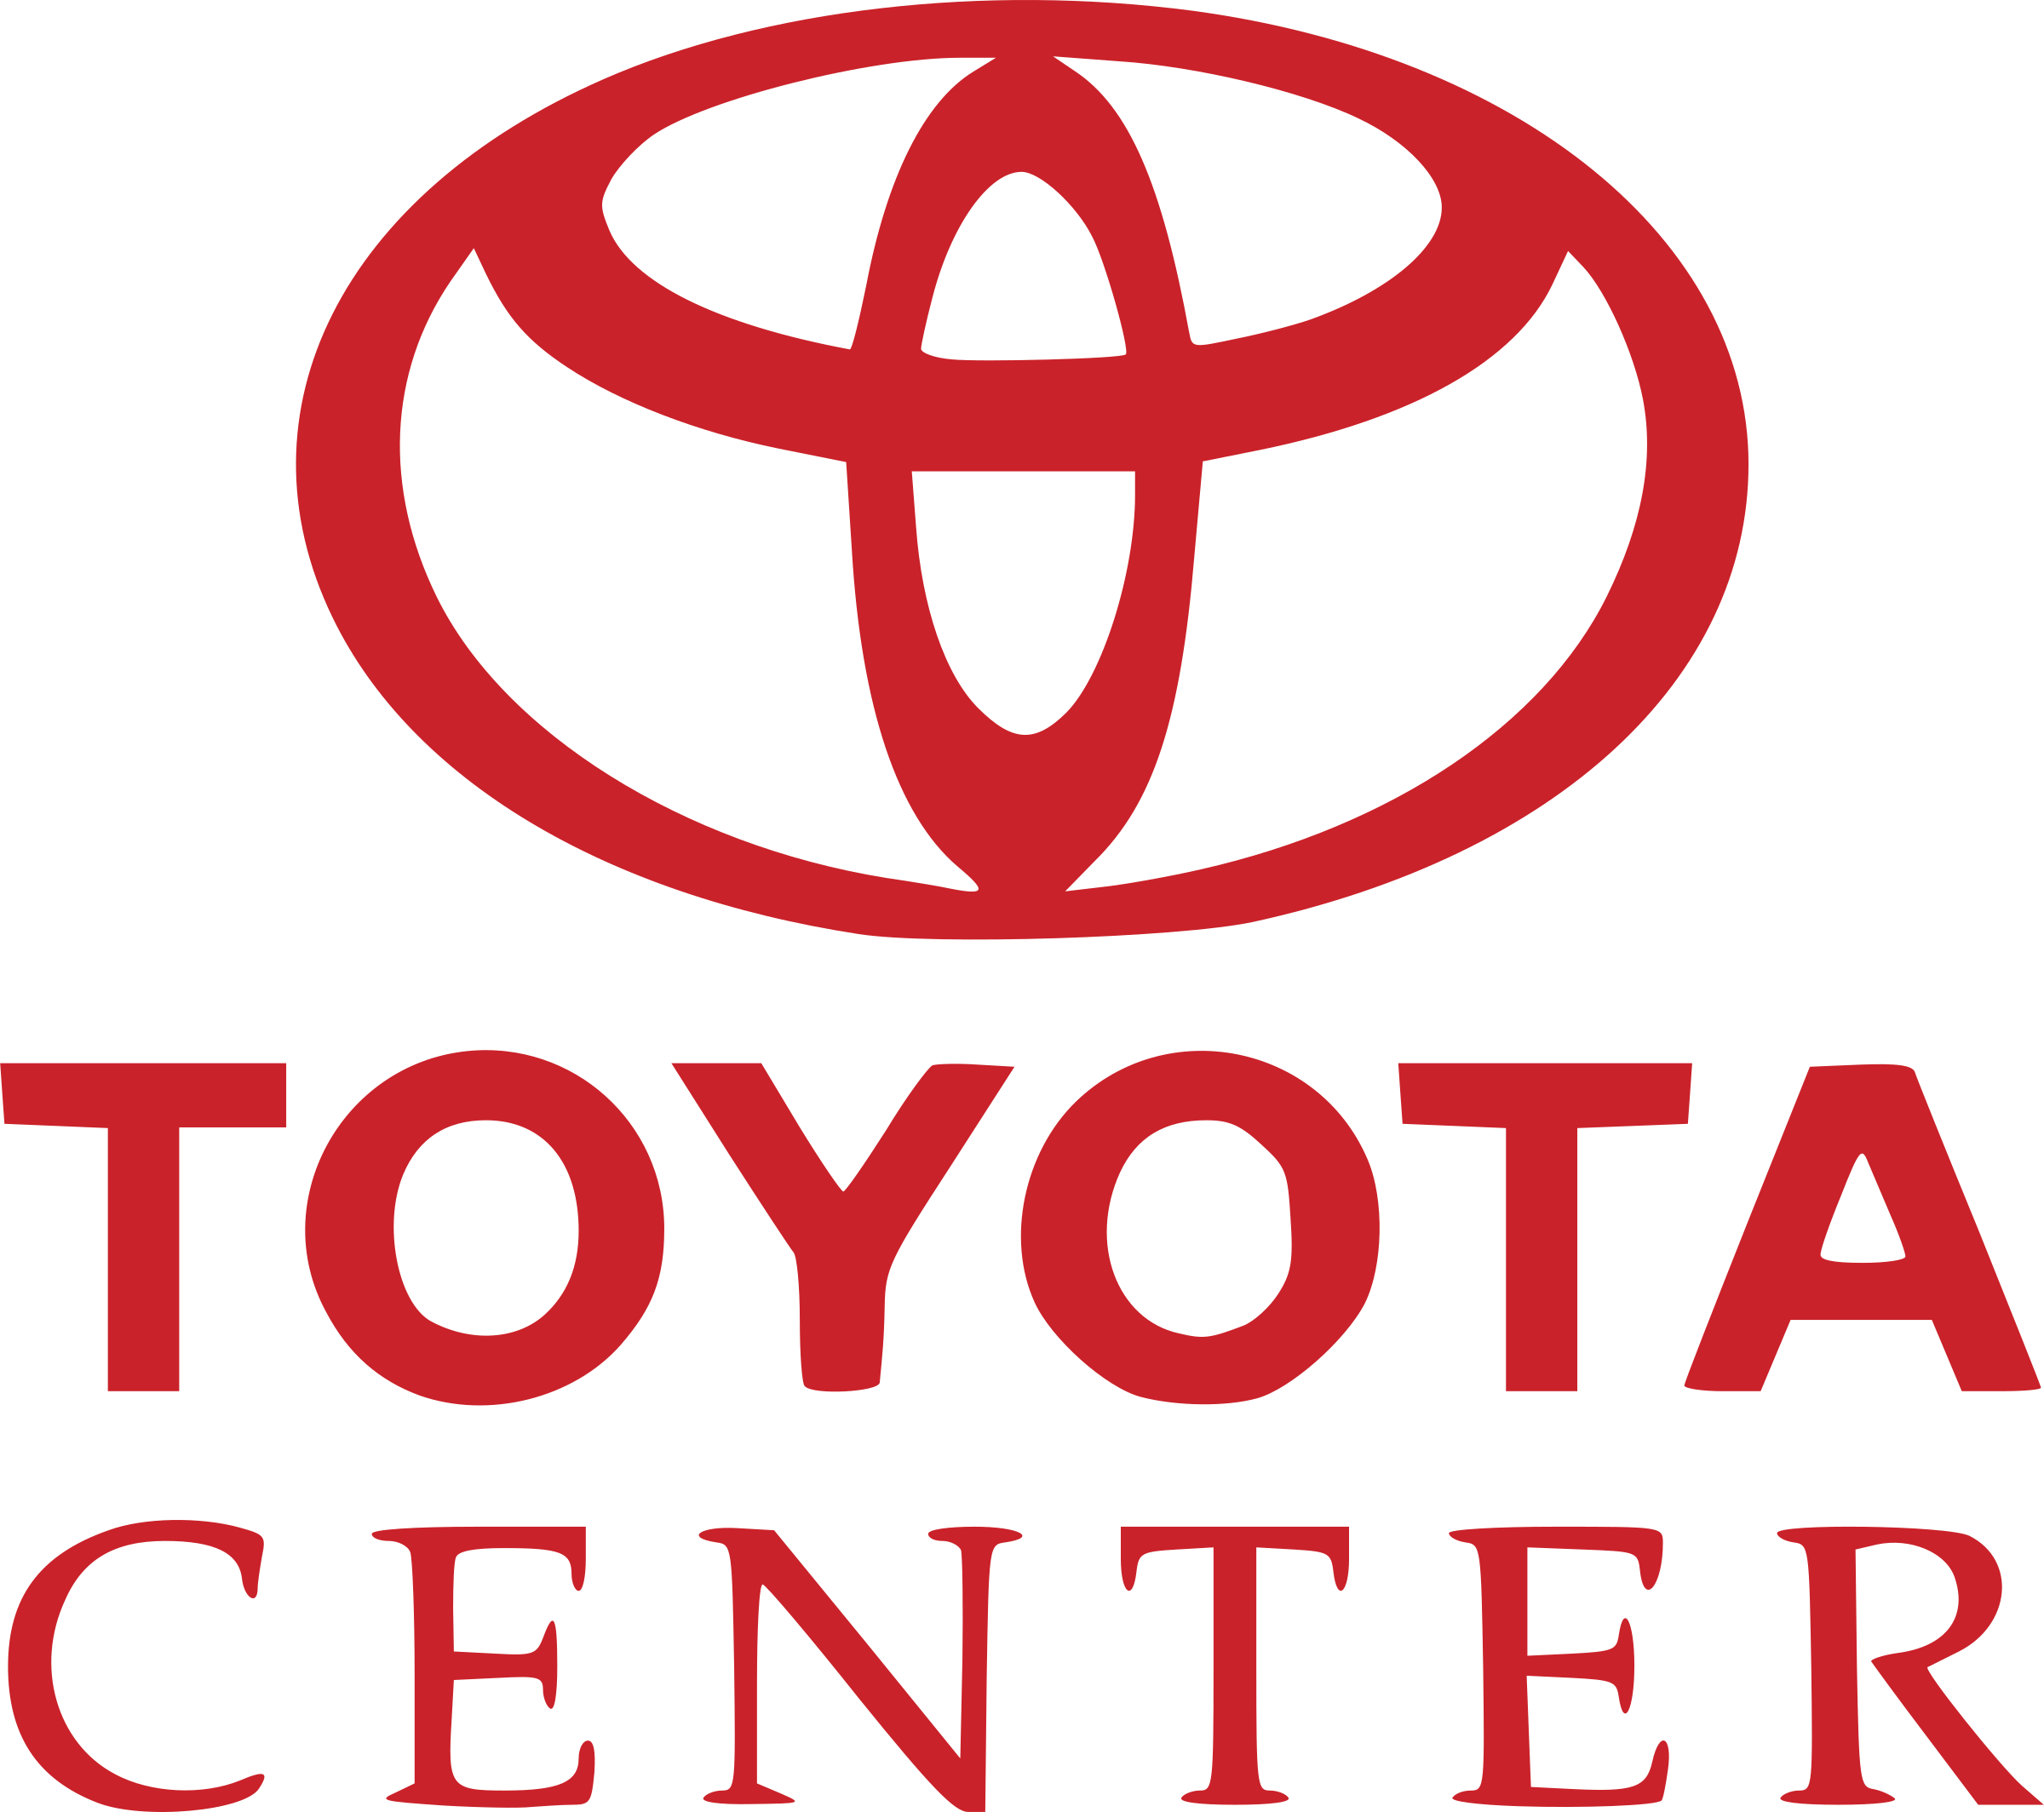 toyota center logo png transparent svg vector freebie supply rh freebiesupply com toyota vector logo free toyota vector logo free